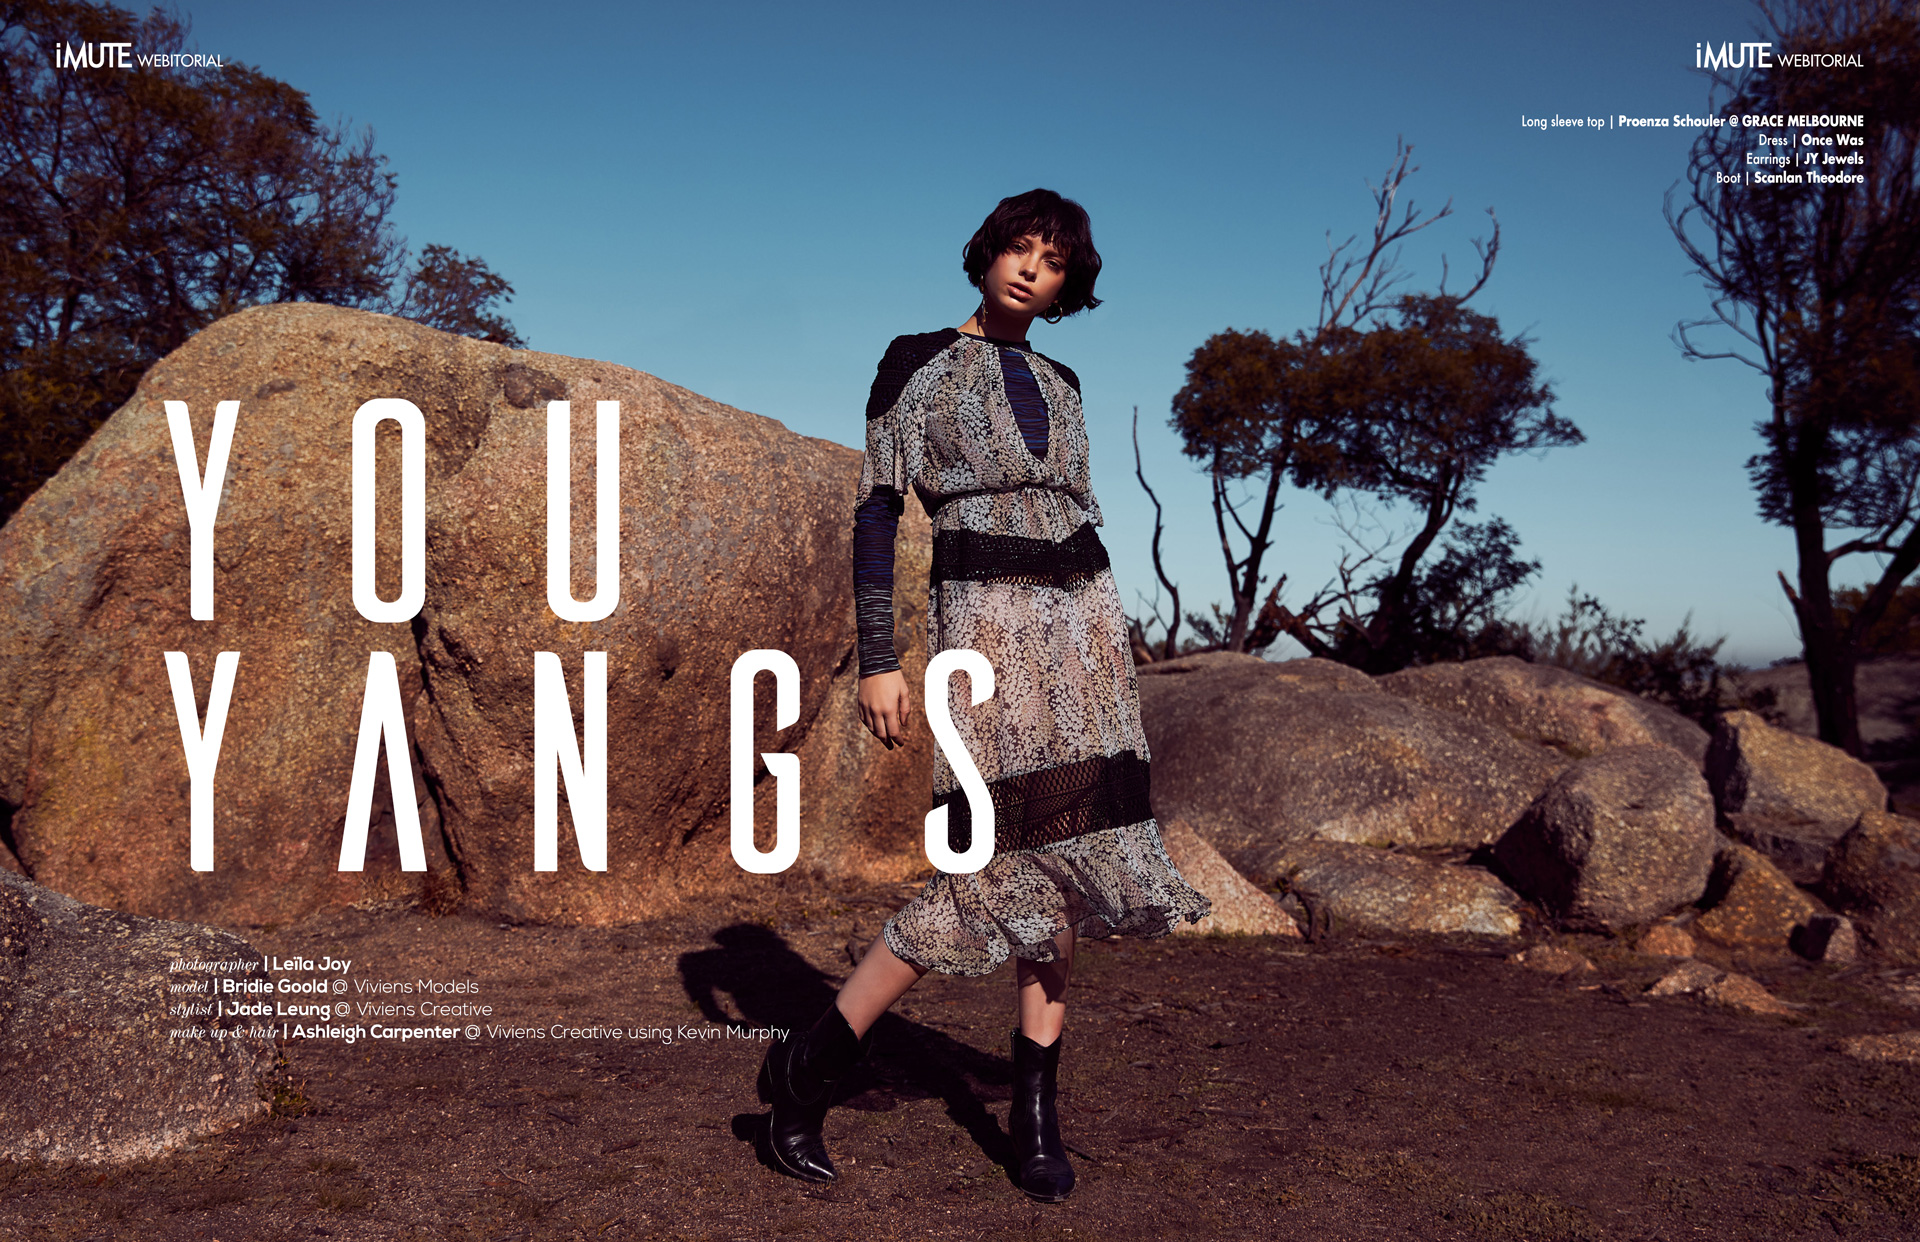 YouYangs webitorial for iMute Magazine Photographer | Leïla Joy Model | Bridie Goold @ Viviens Models Stylist | Jade Leung @ Viviens Creative Makeup & Hair | Ashleigh Carpenter @ Viviens Creative using Kevin Murphy